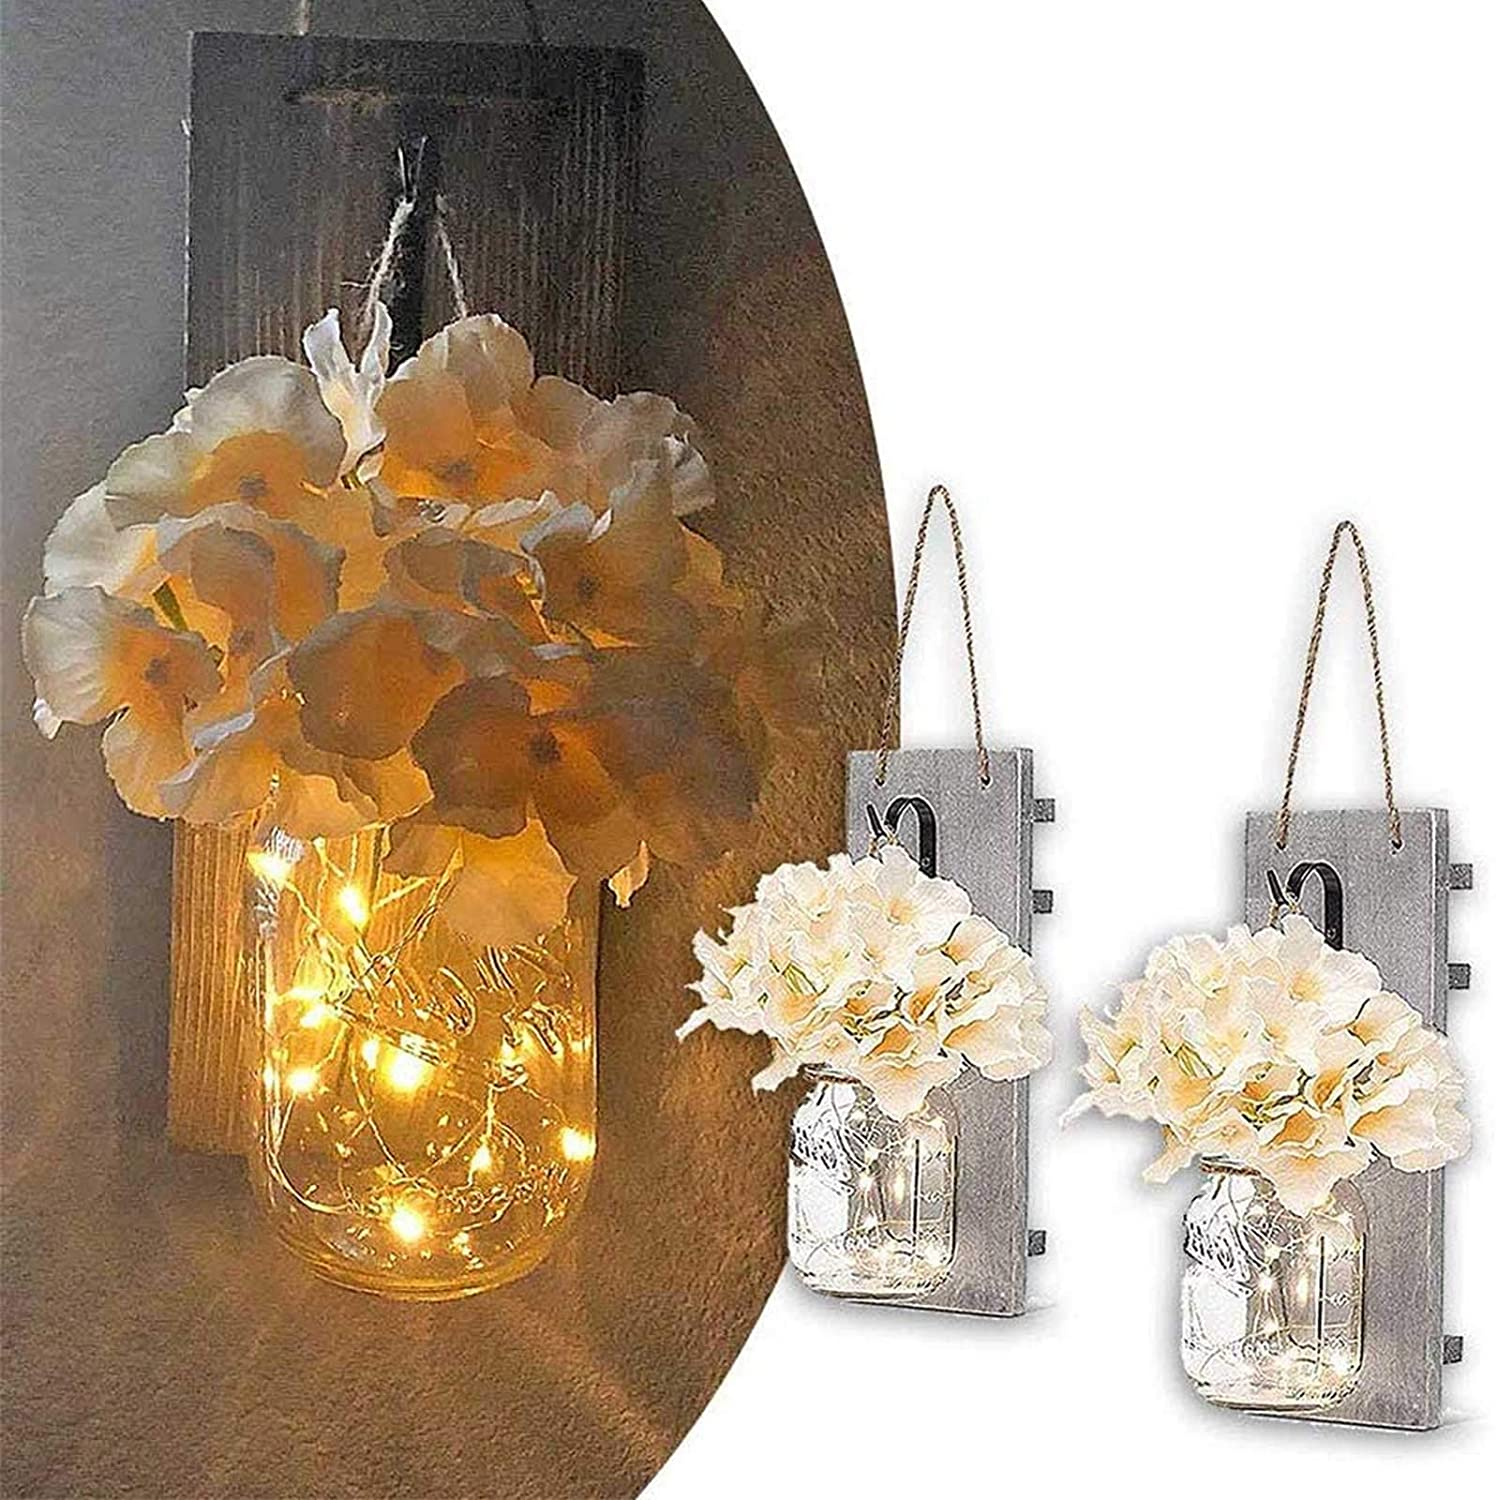 BESTEASY Rustic Wall Sconces, Sconce Home Wall Decor Set of 2 Mason Jar Sconces Country Home Mason Jar Wall Sconce with 30 LED Fairy Lights for Home and Kitchen Decorations